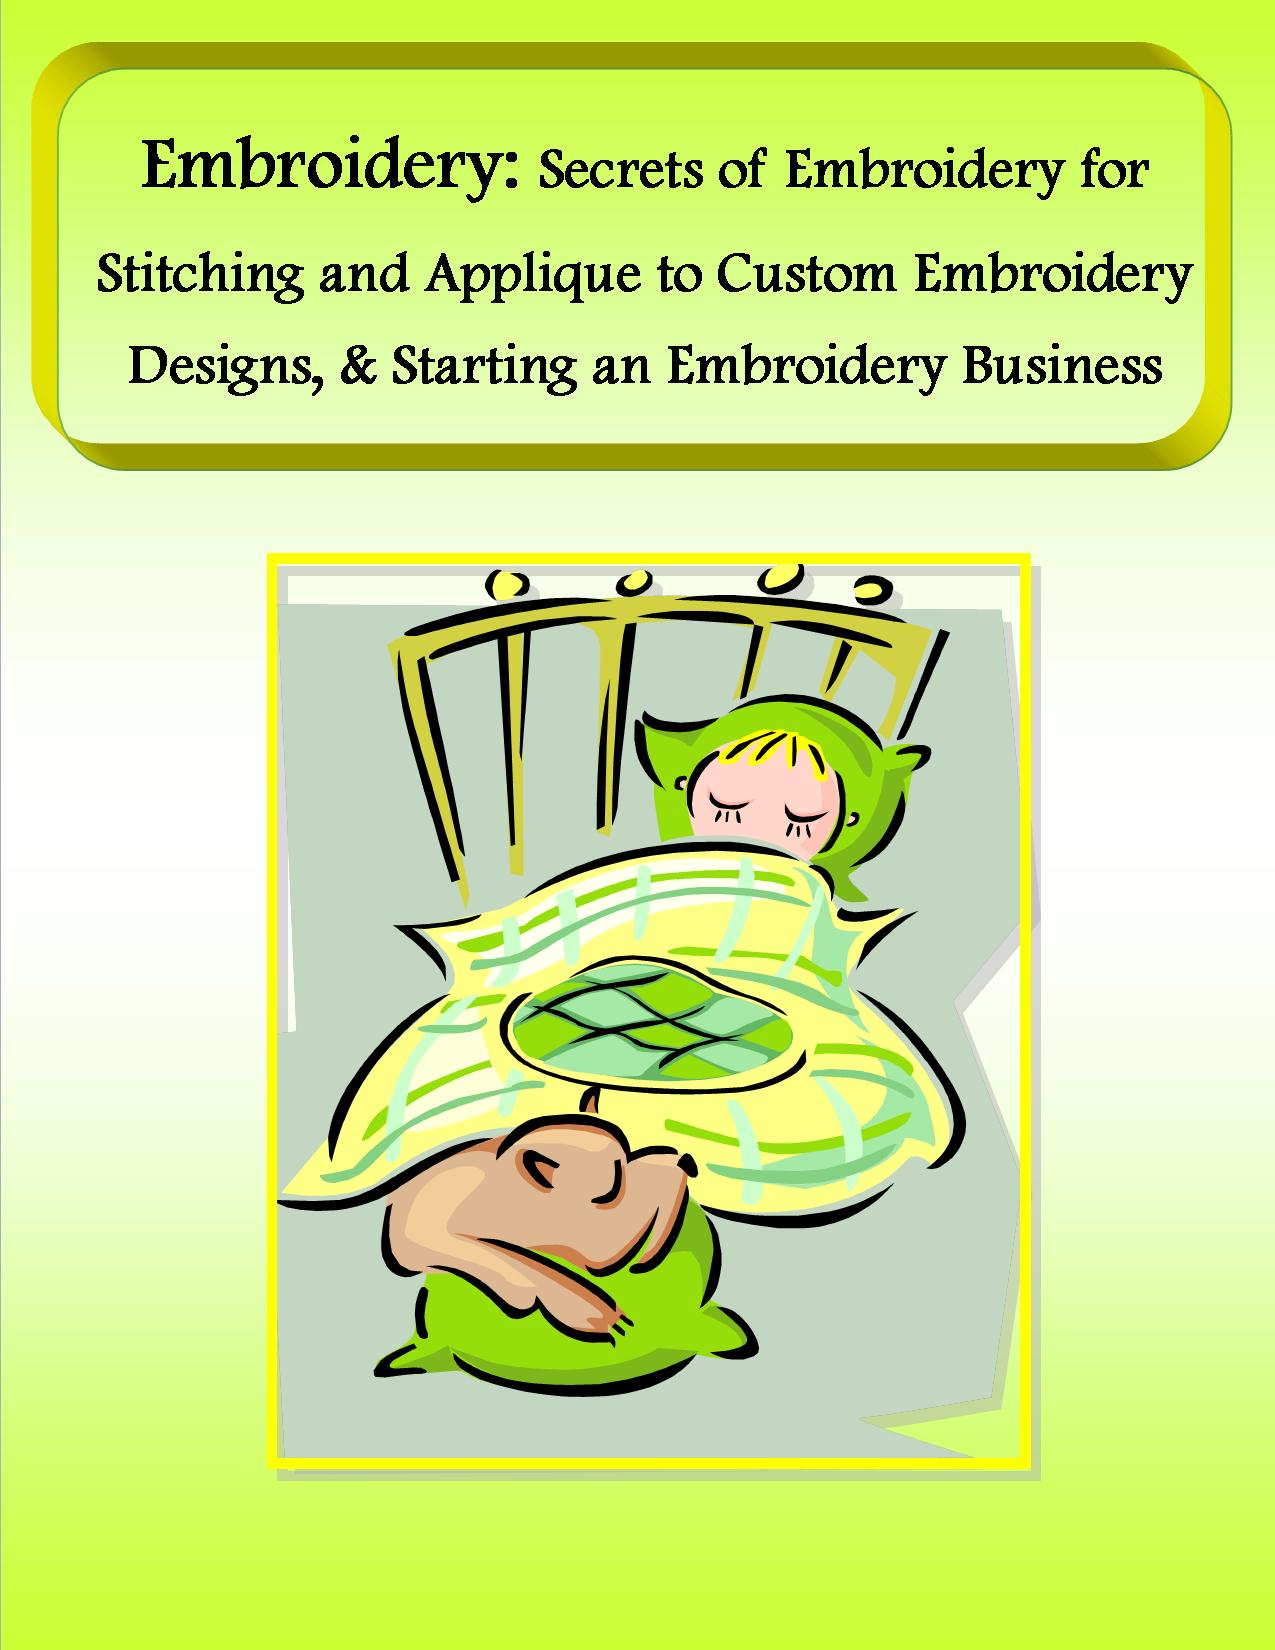 Embroidery: Secrets of Embroidery for Stitching and Applique to Custom Embroidery Designs, & Starting an Embroidery Business